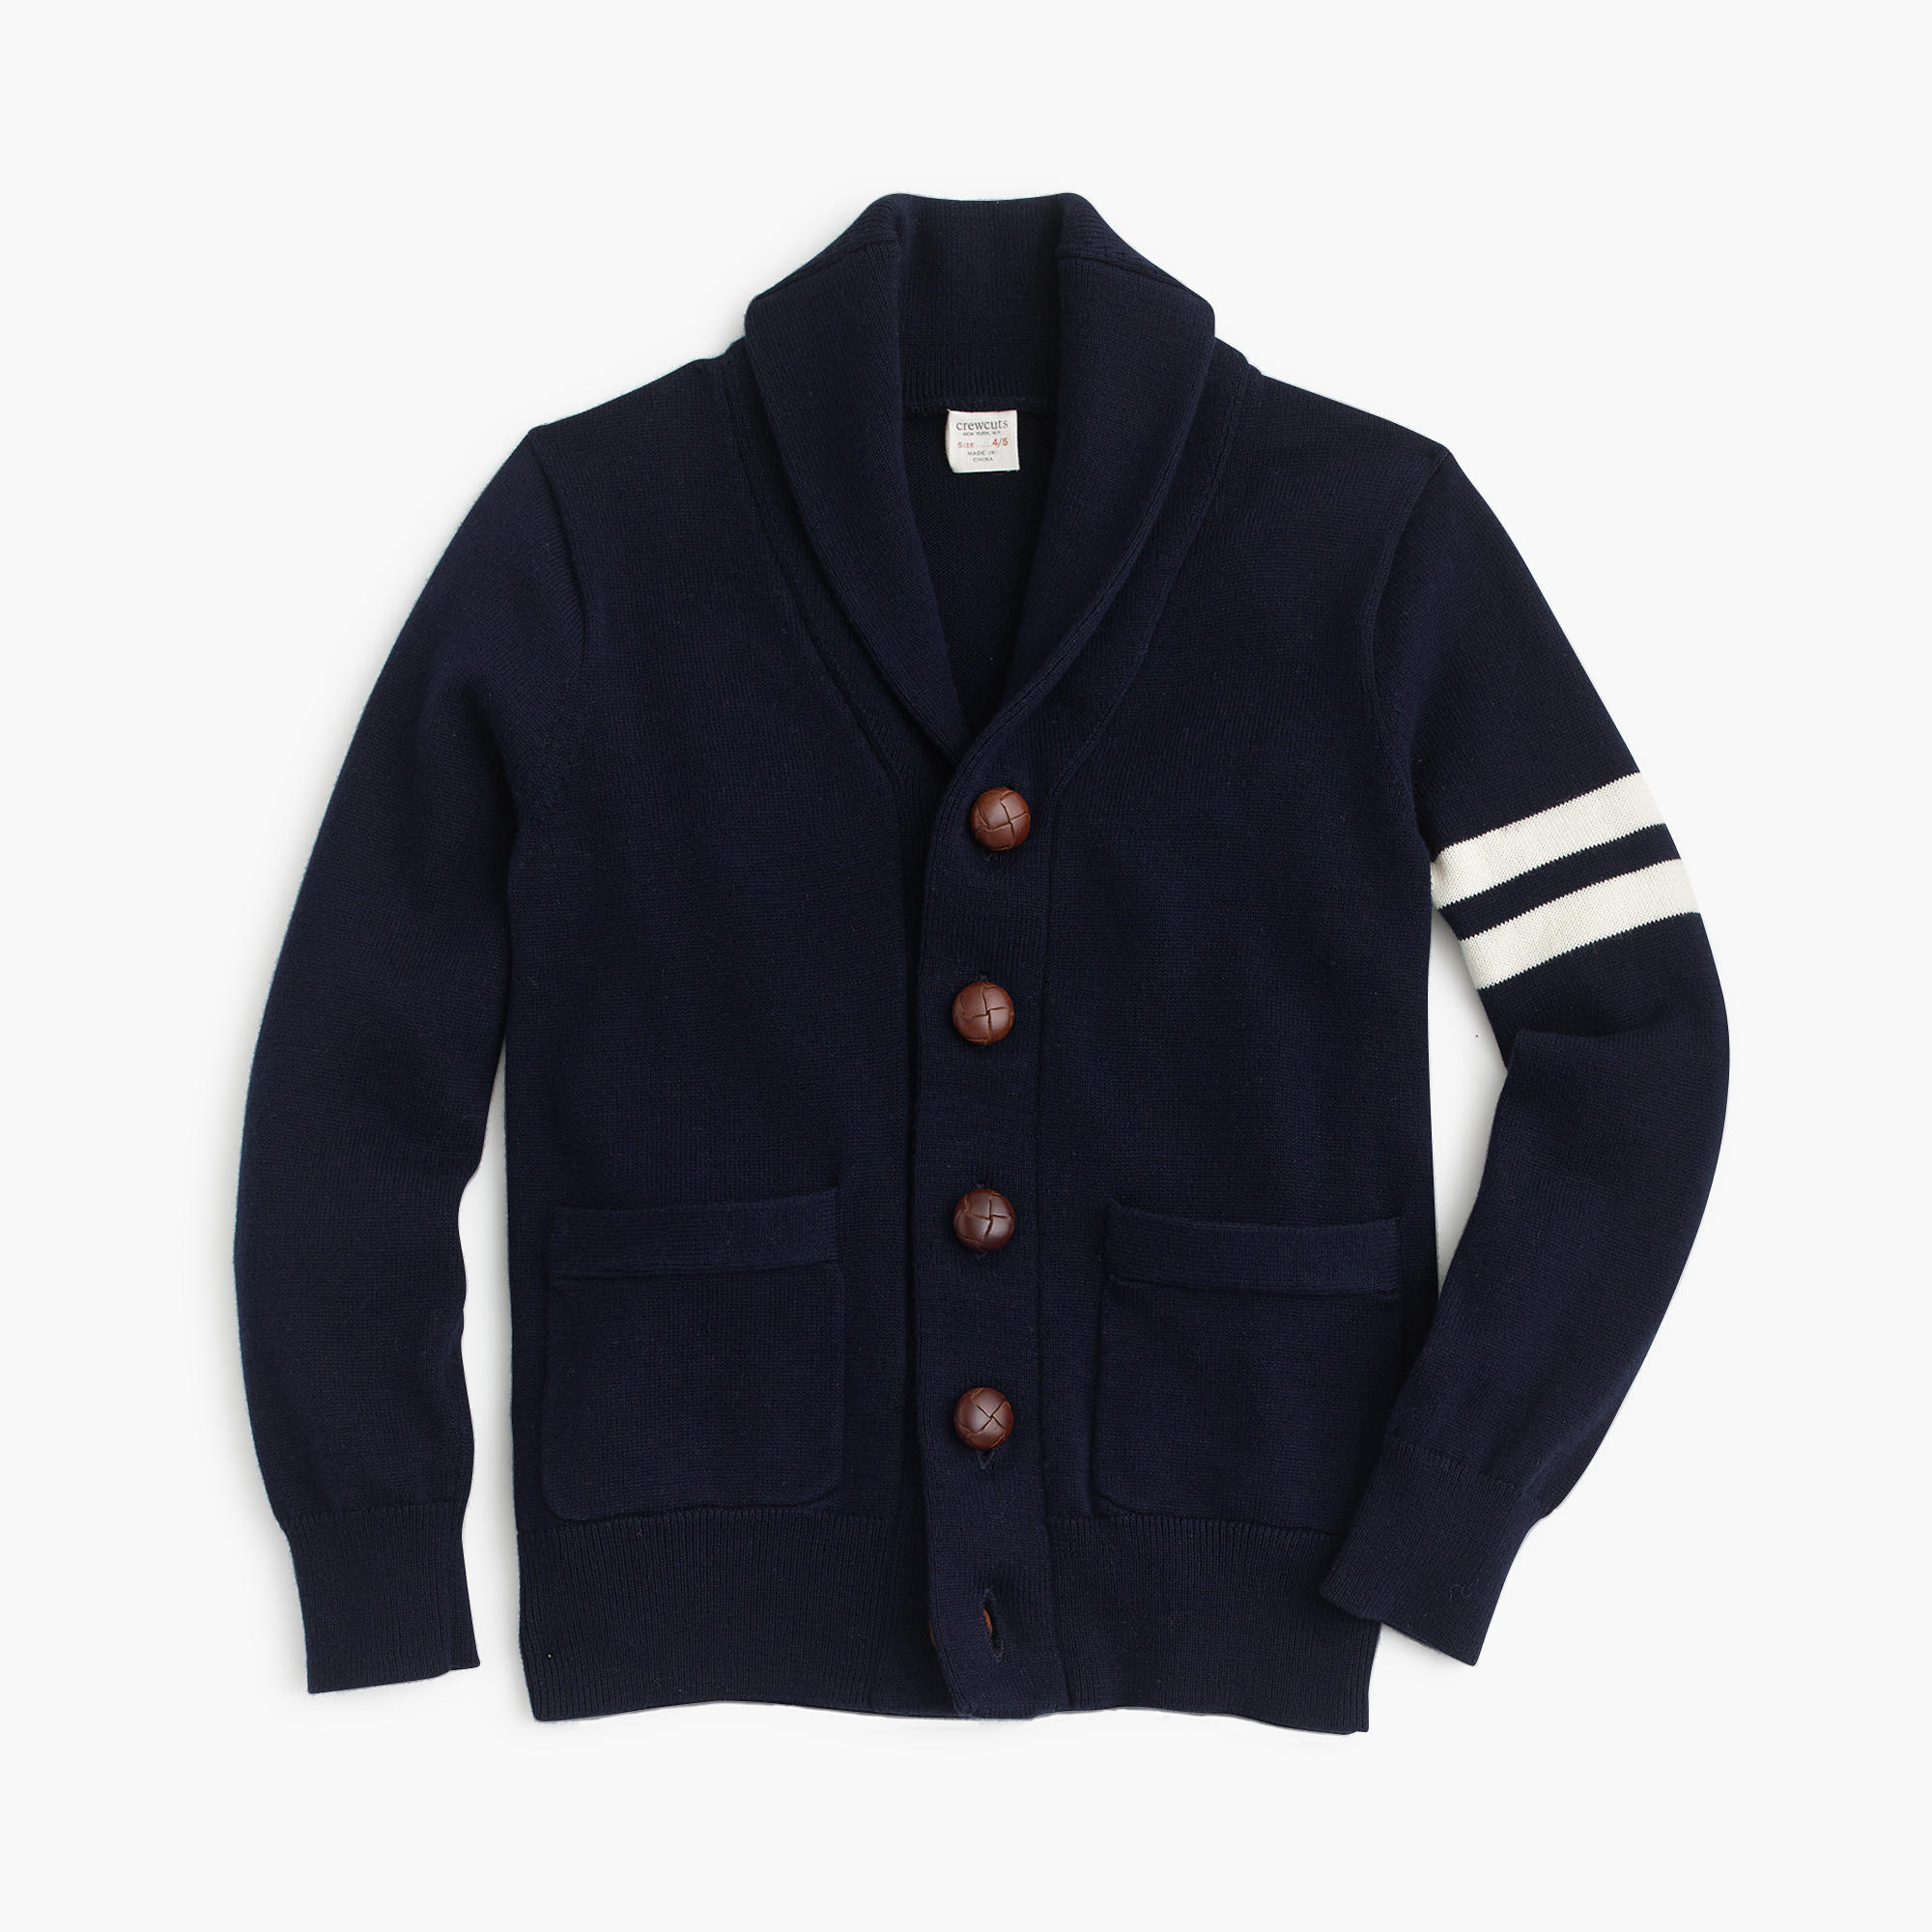 The vintage look of our Varsity Cardigan Sweater recalls youthful days of glory. Made of pure wool with three varsity stripes on the sleeve and a button front, this classic cardigan looks and feels just like the one in your dad's or grandfather's closet.